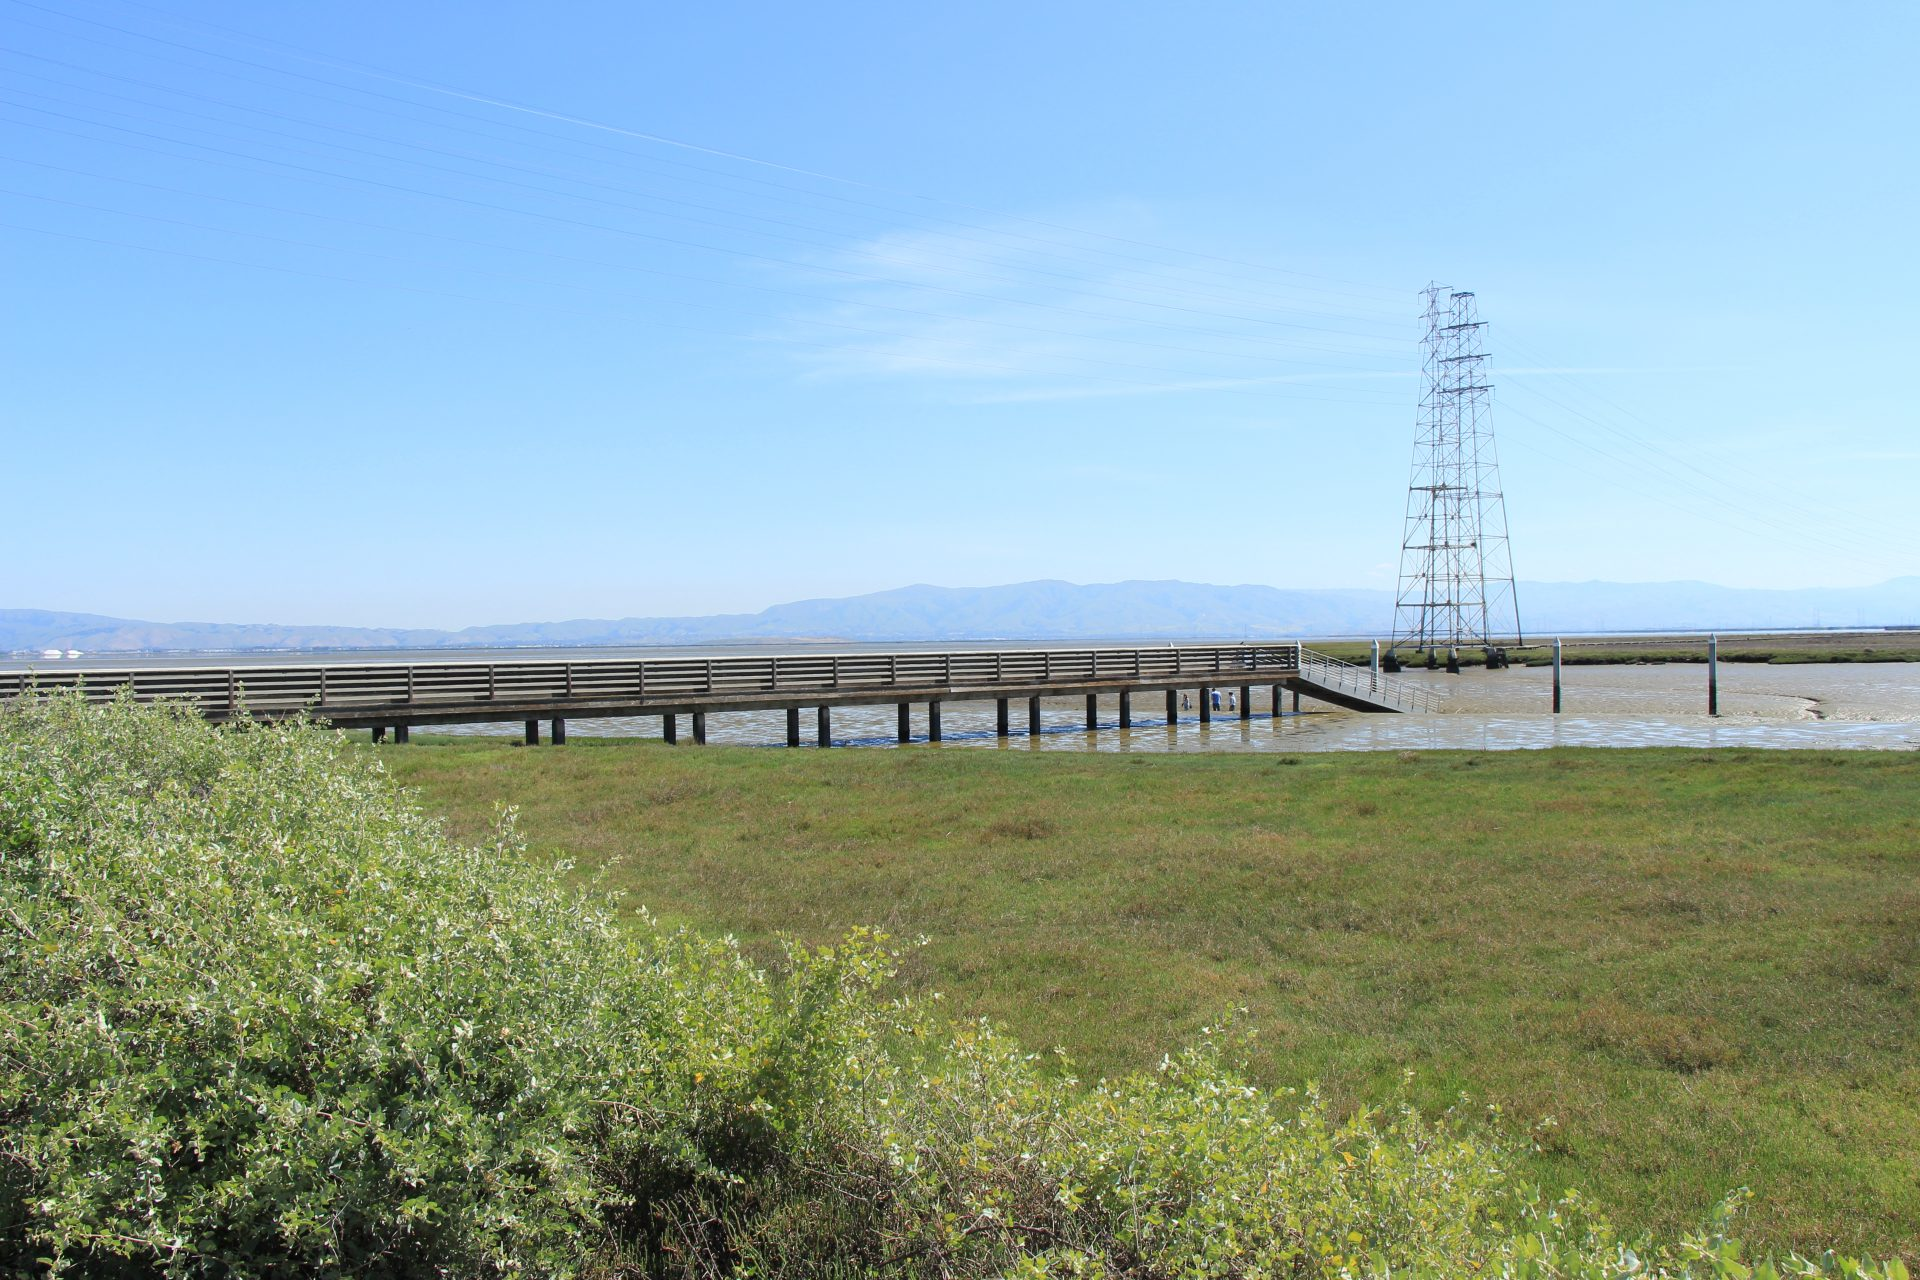 marsh grasses with a wooden boardwalk extending out to water